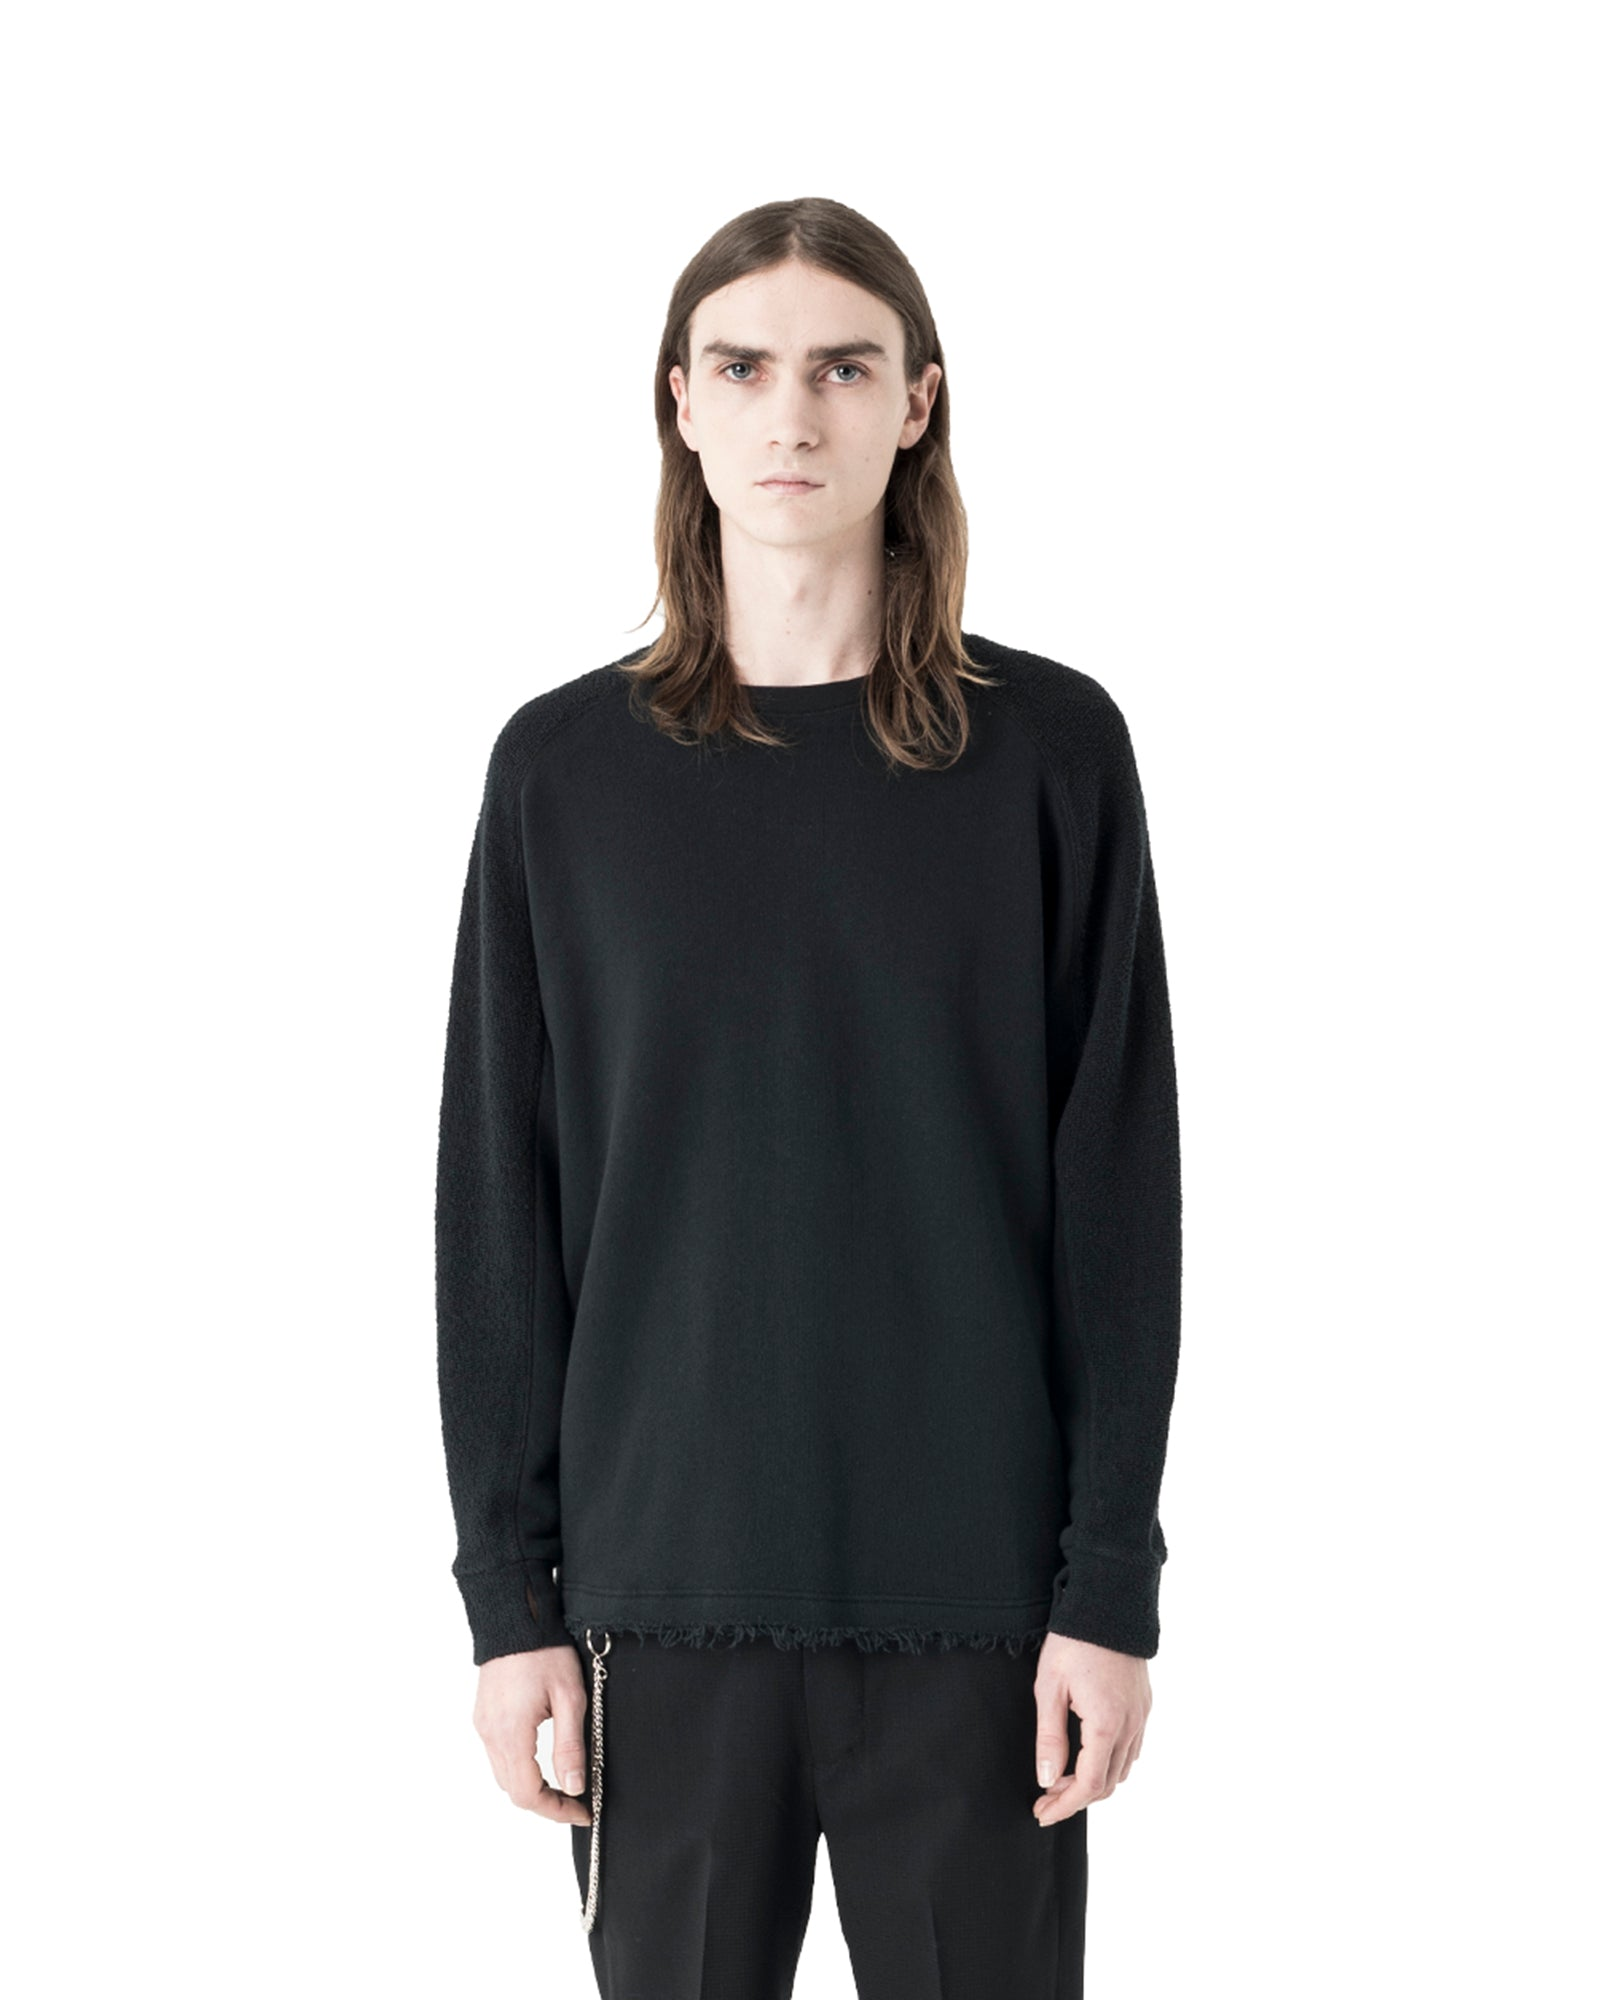 Vno Sweater - Black